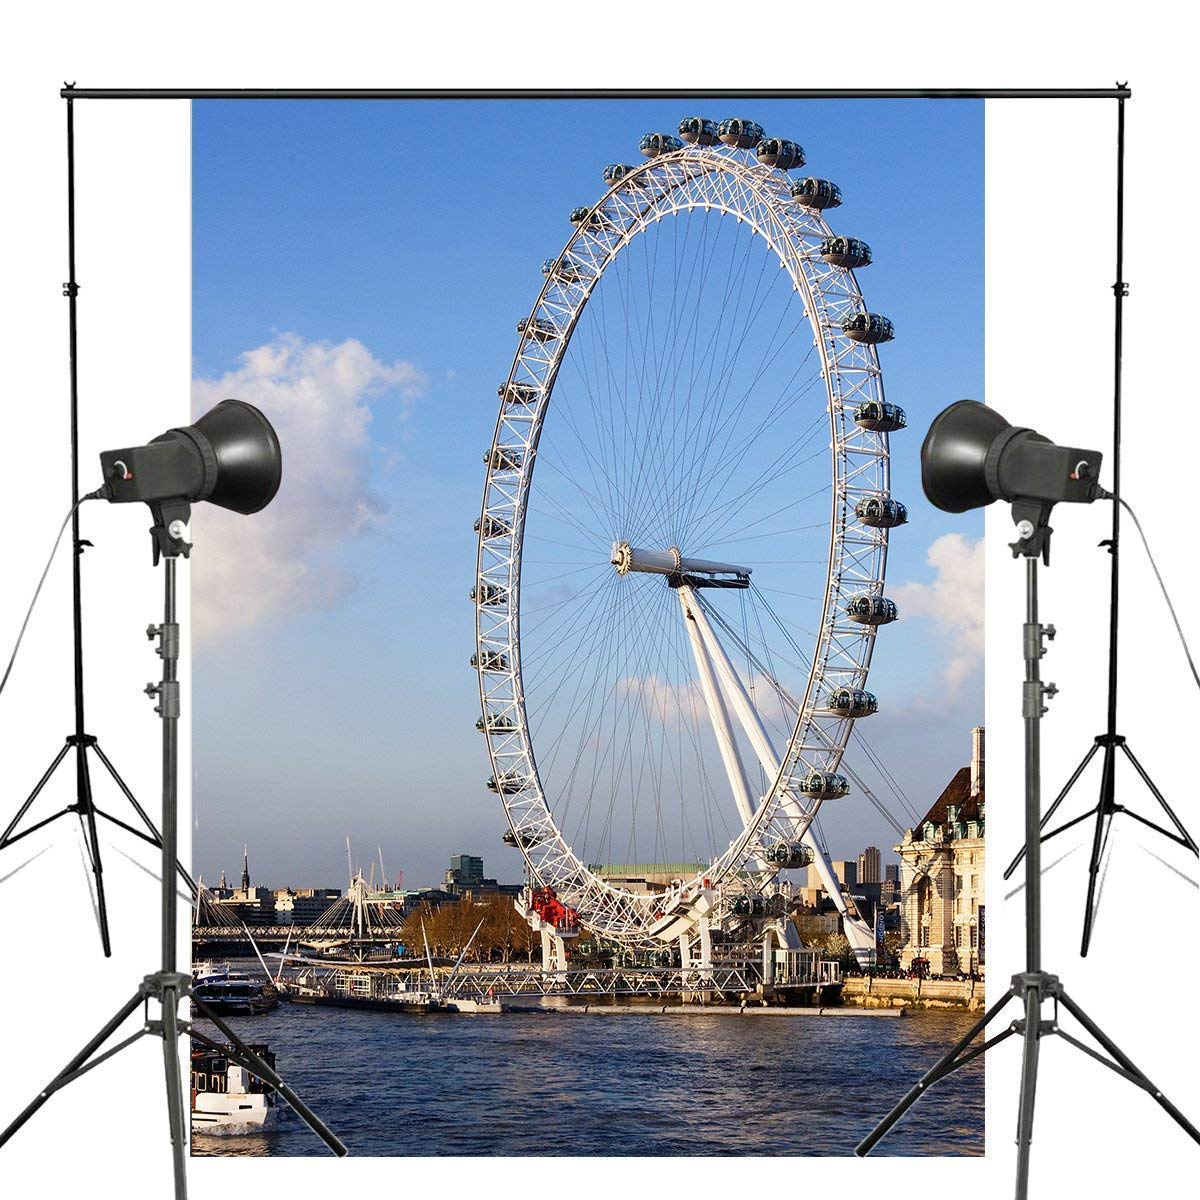 ERTIANANG 150x220cm London Eye Photography Background Ferris Wheel Backdrop Studio Props Wall Water Photography Backdrop